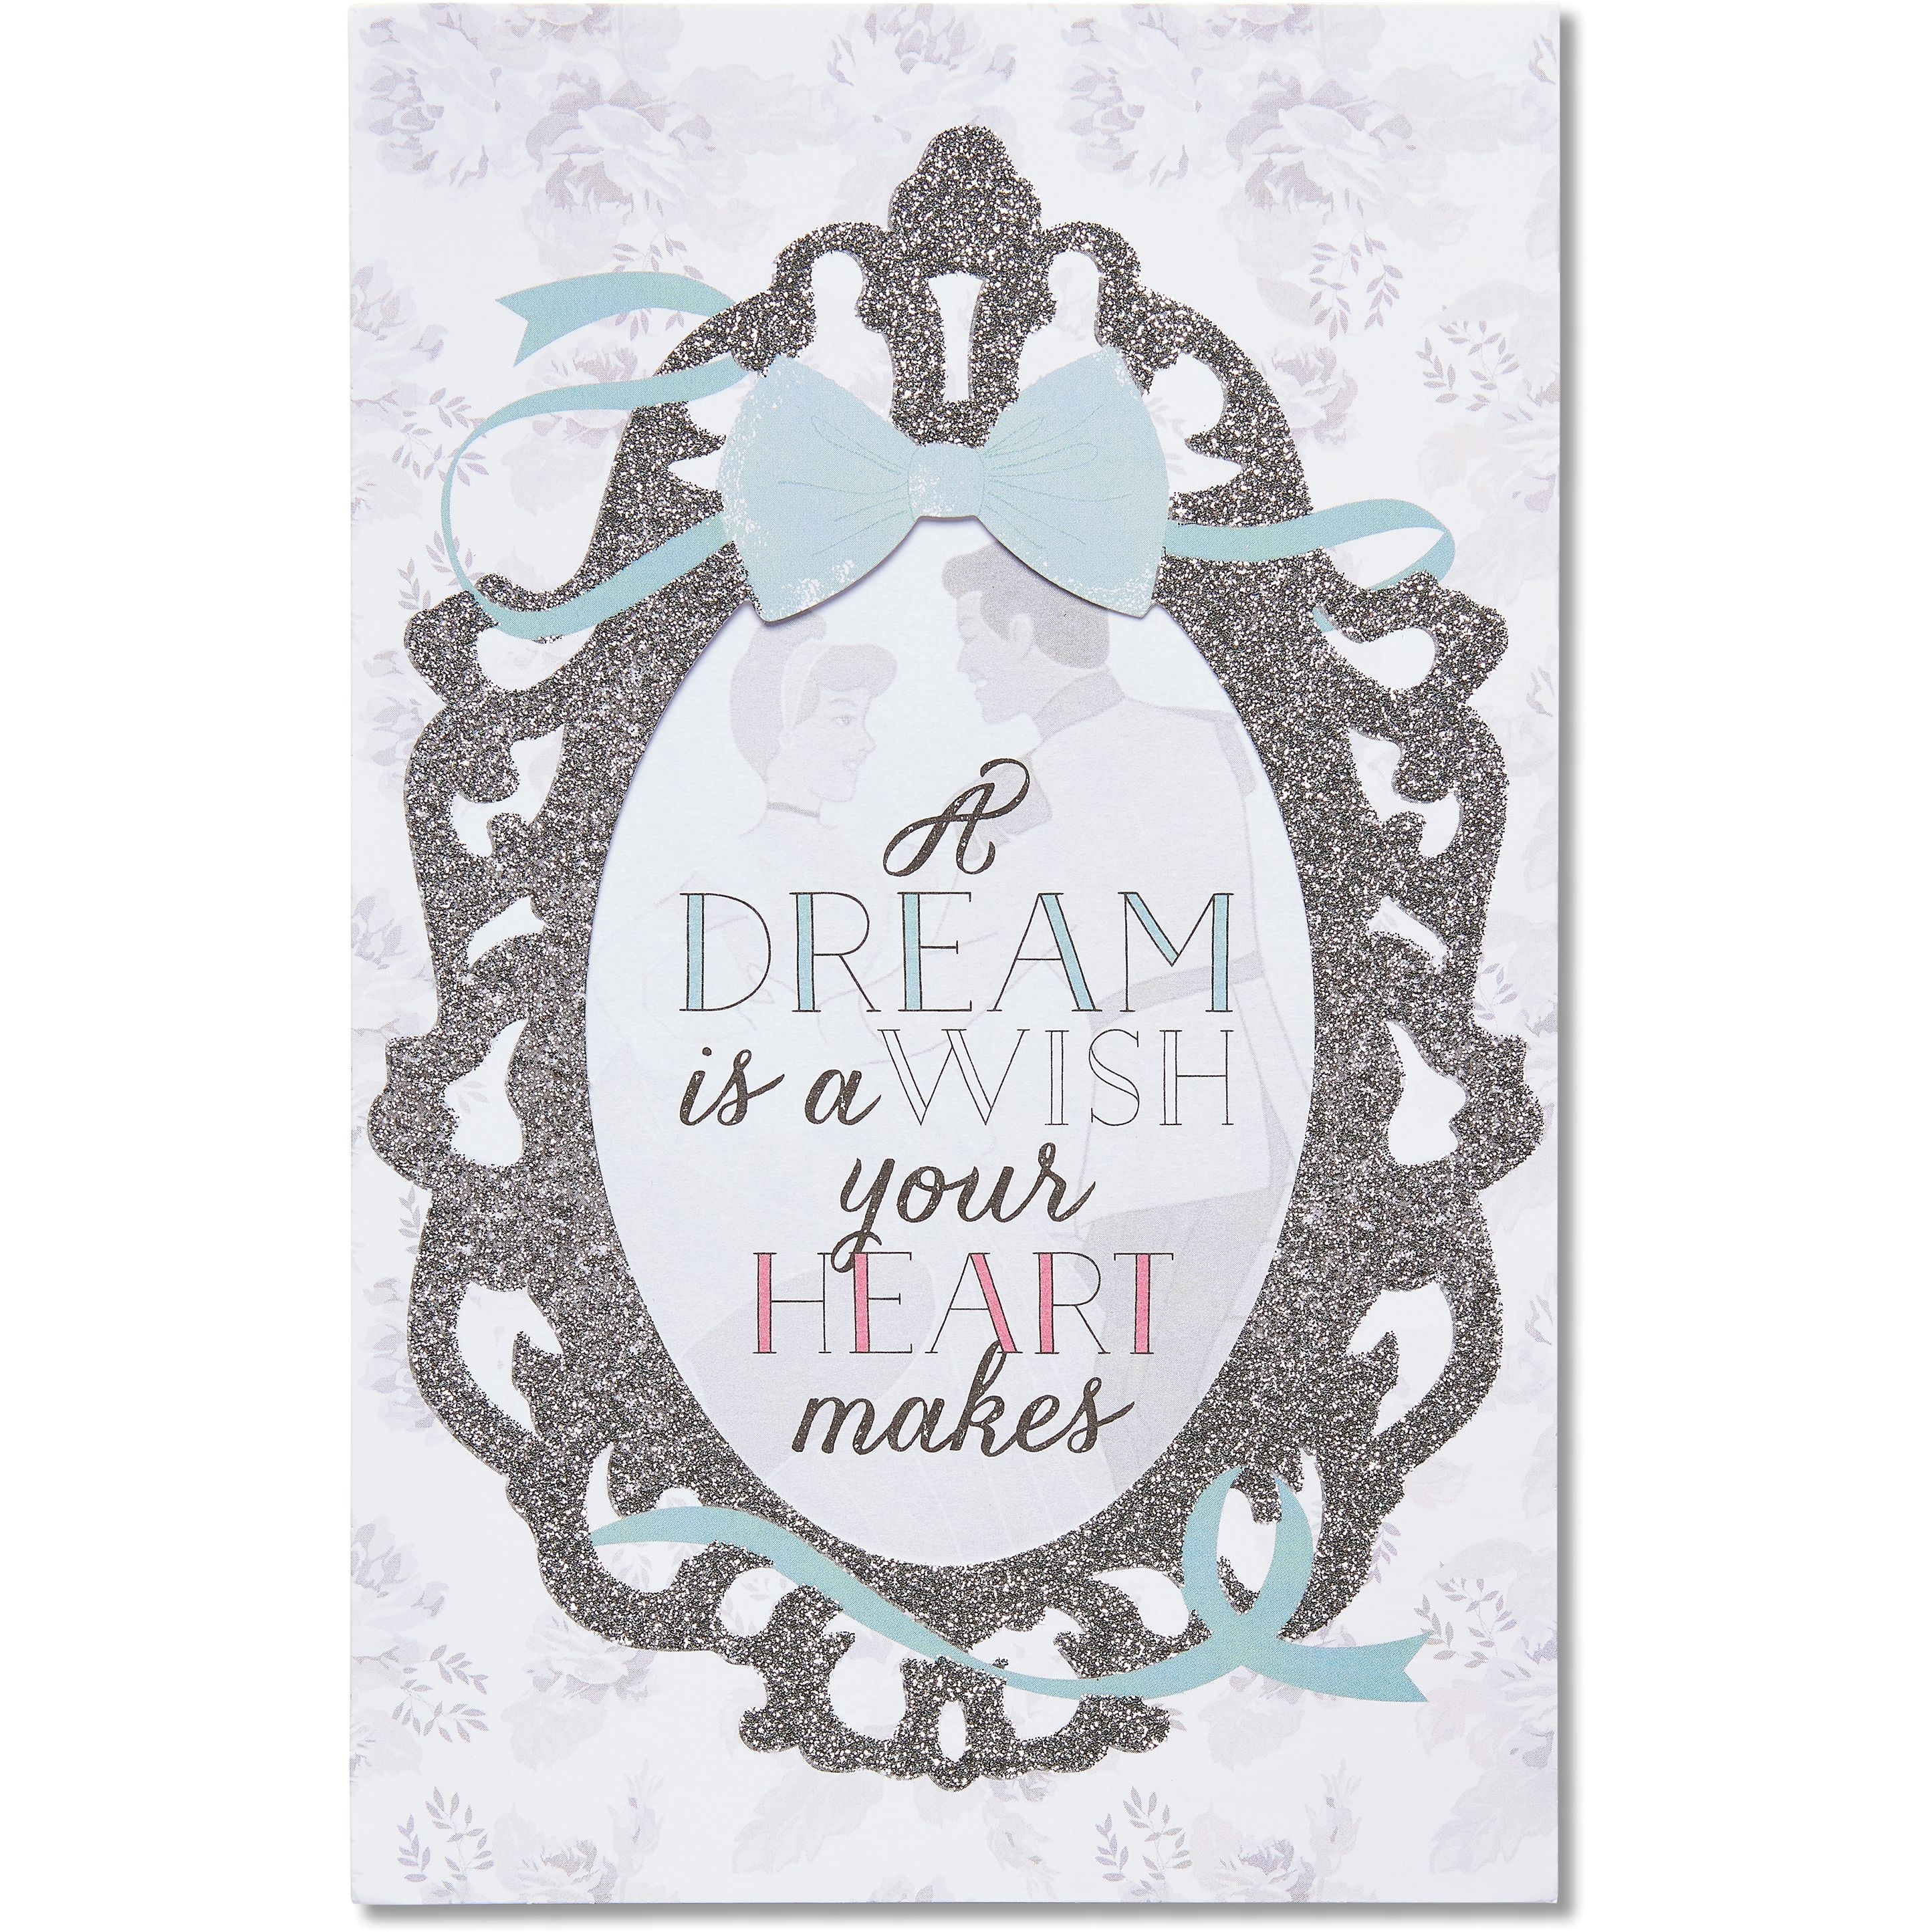 American Greetings Cinderella Wedding Card with Glitter